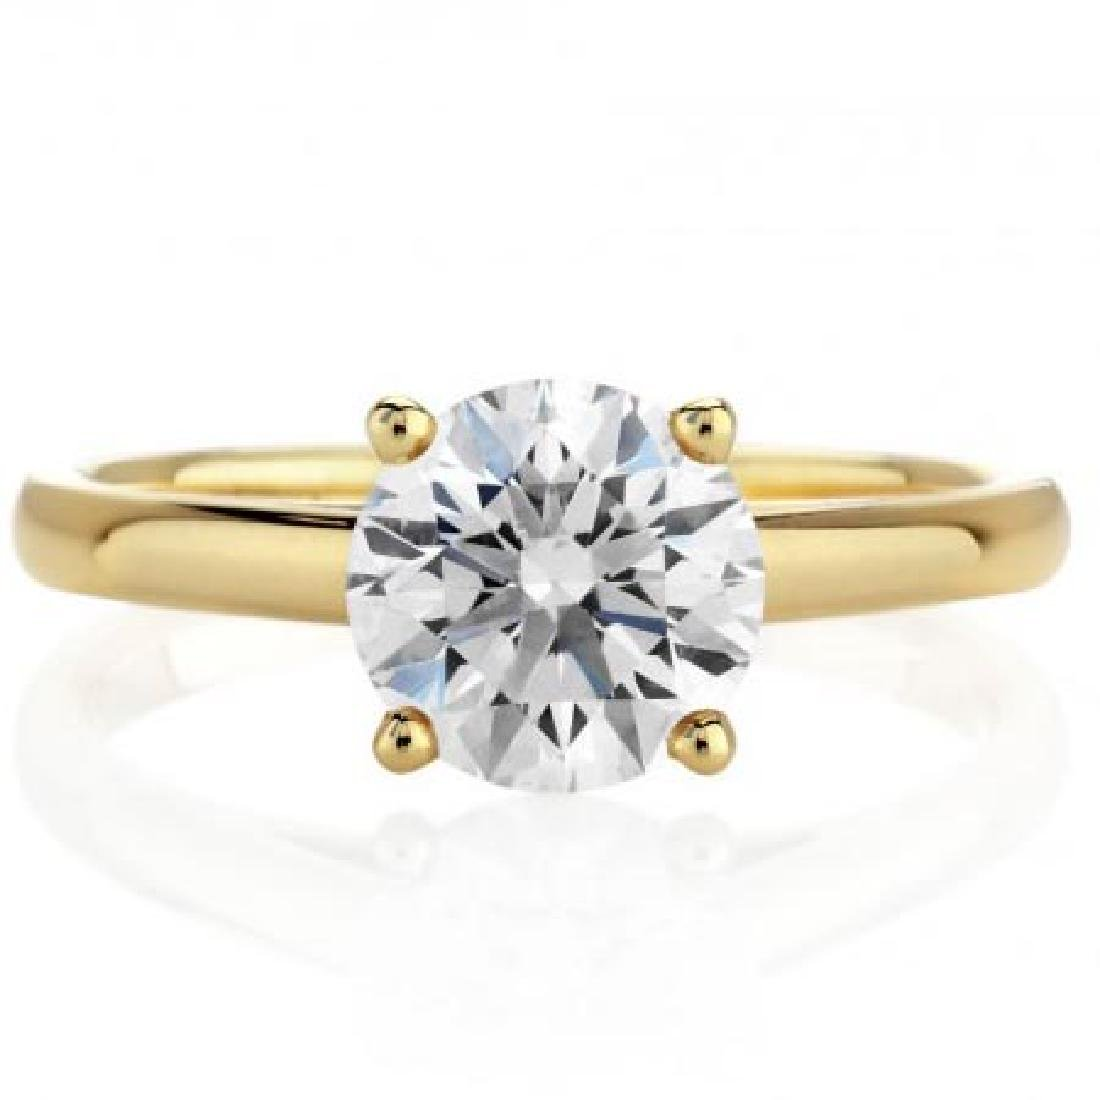 CERTIFIED 1 CTW ROUND D/VVS1 SOLITAIRE RING IN 14K YELL